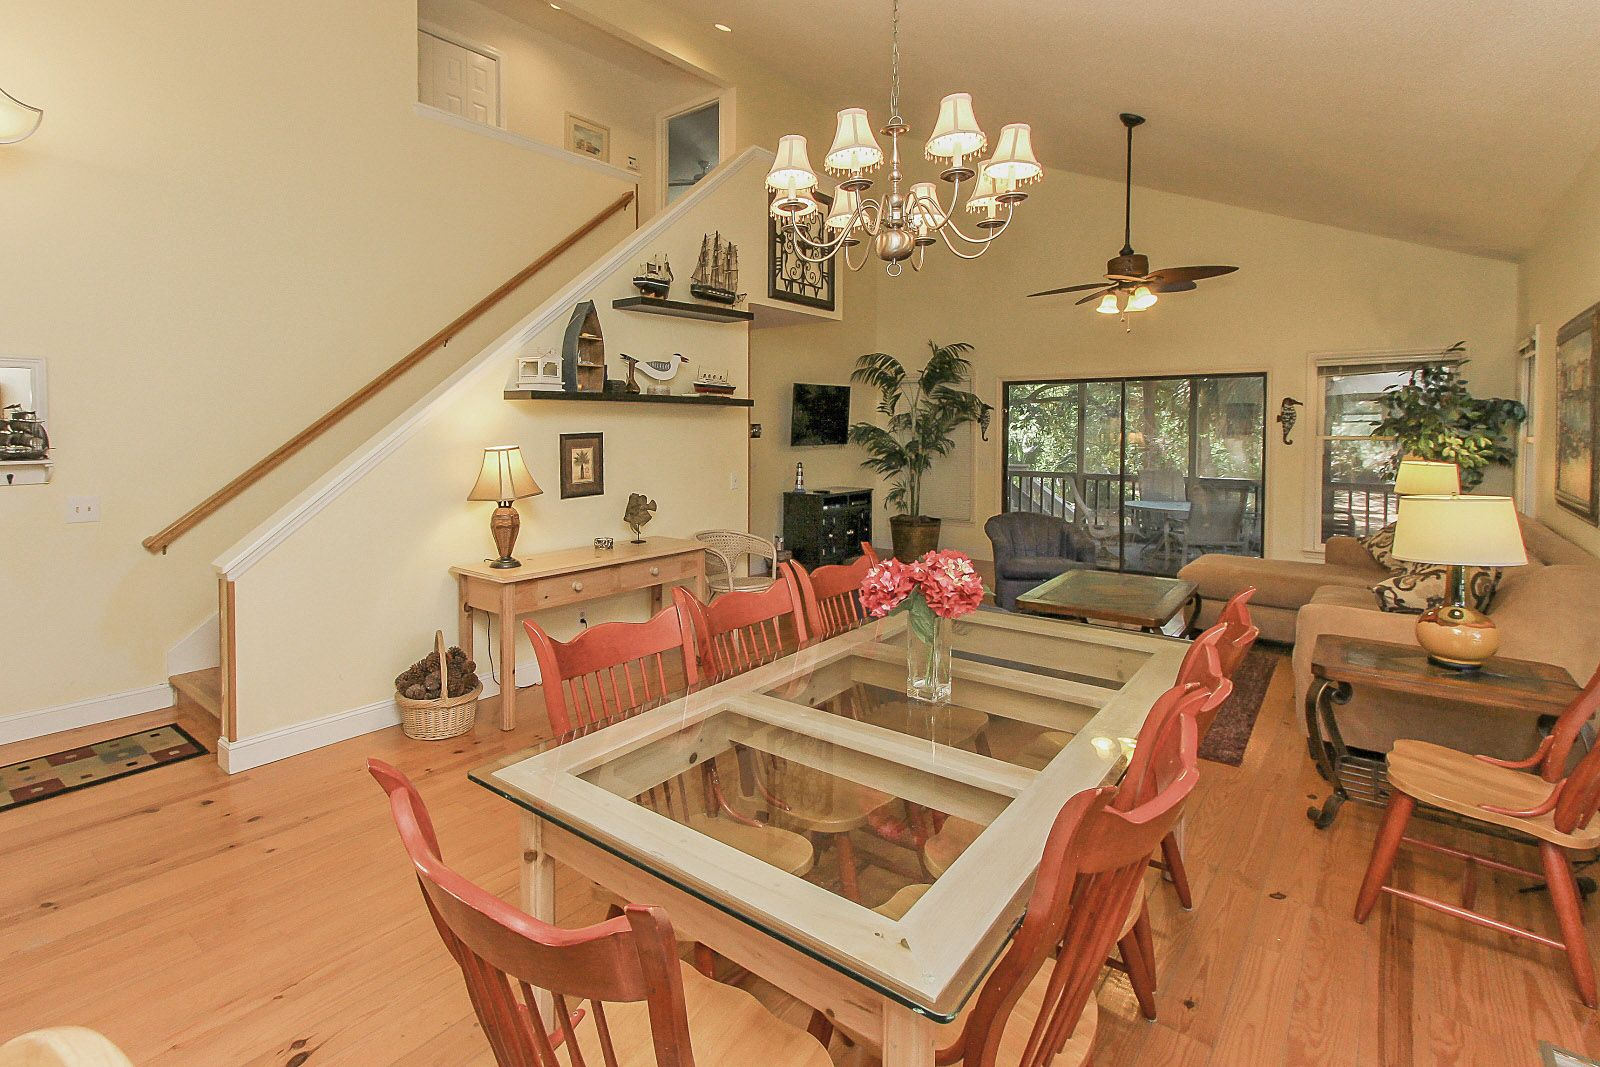 This 2 Story 4 Bedroom 4 Bathroom Home Has Been Updated With Bright Furnishings Carpet Tile Hardwood Floors And Kitchen Wi Home Luxury Homes Vacation Home